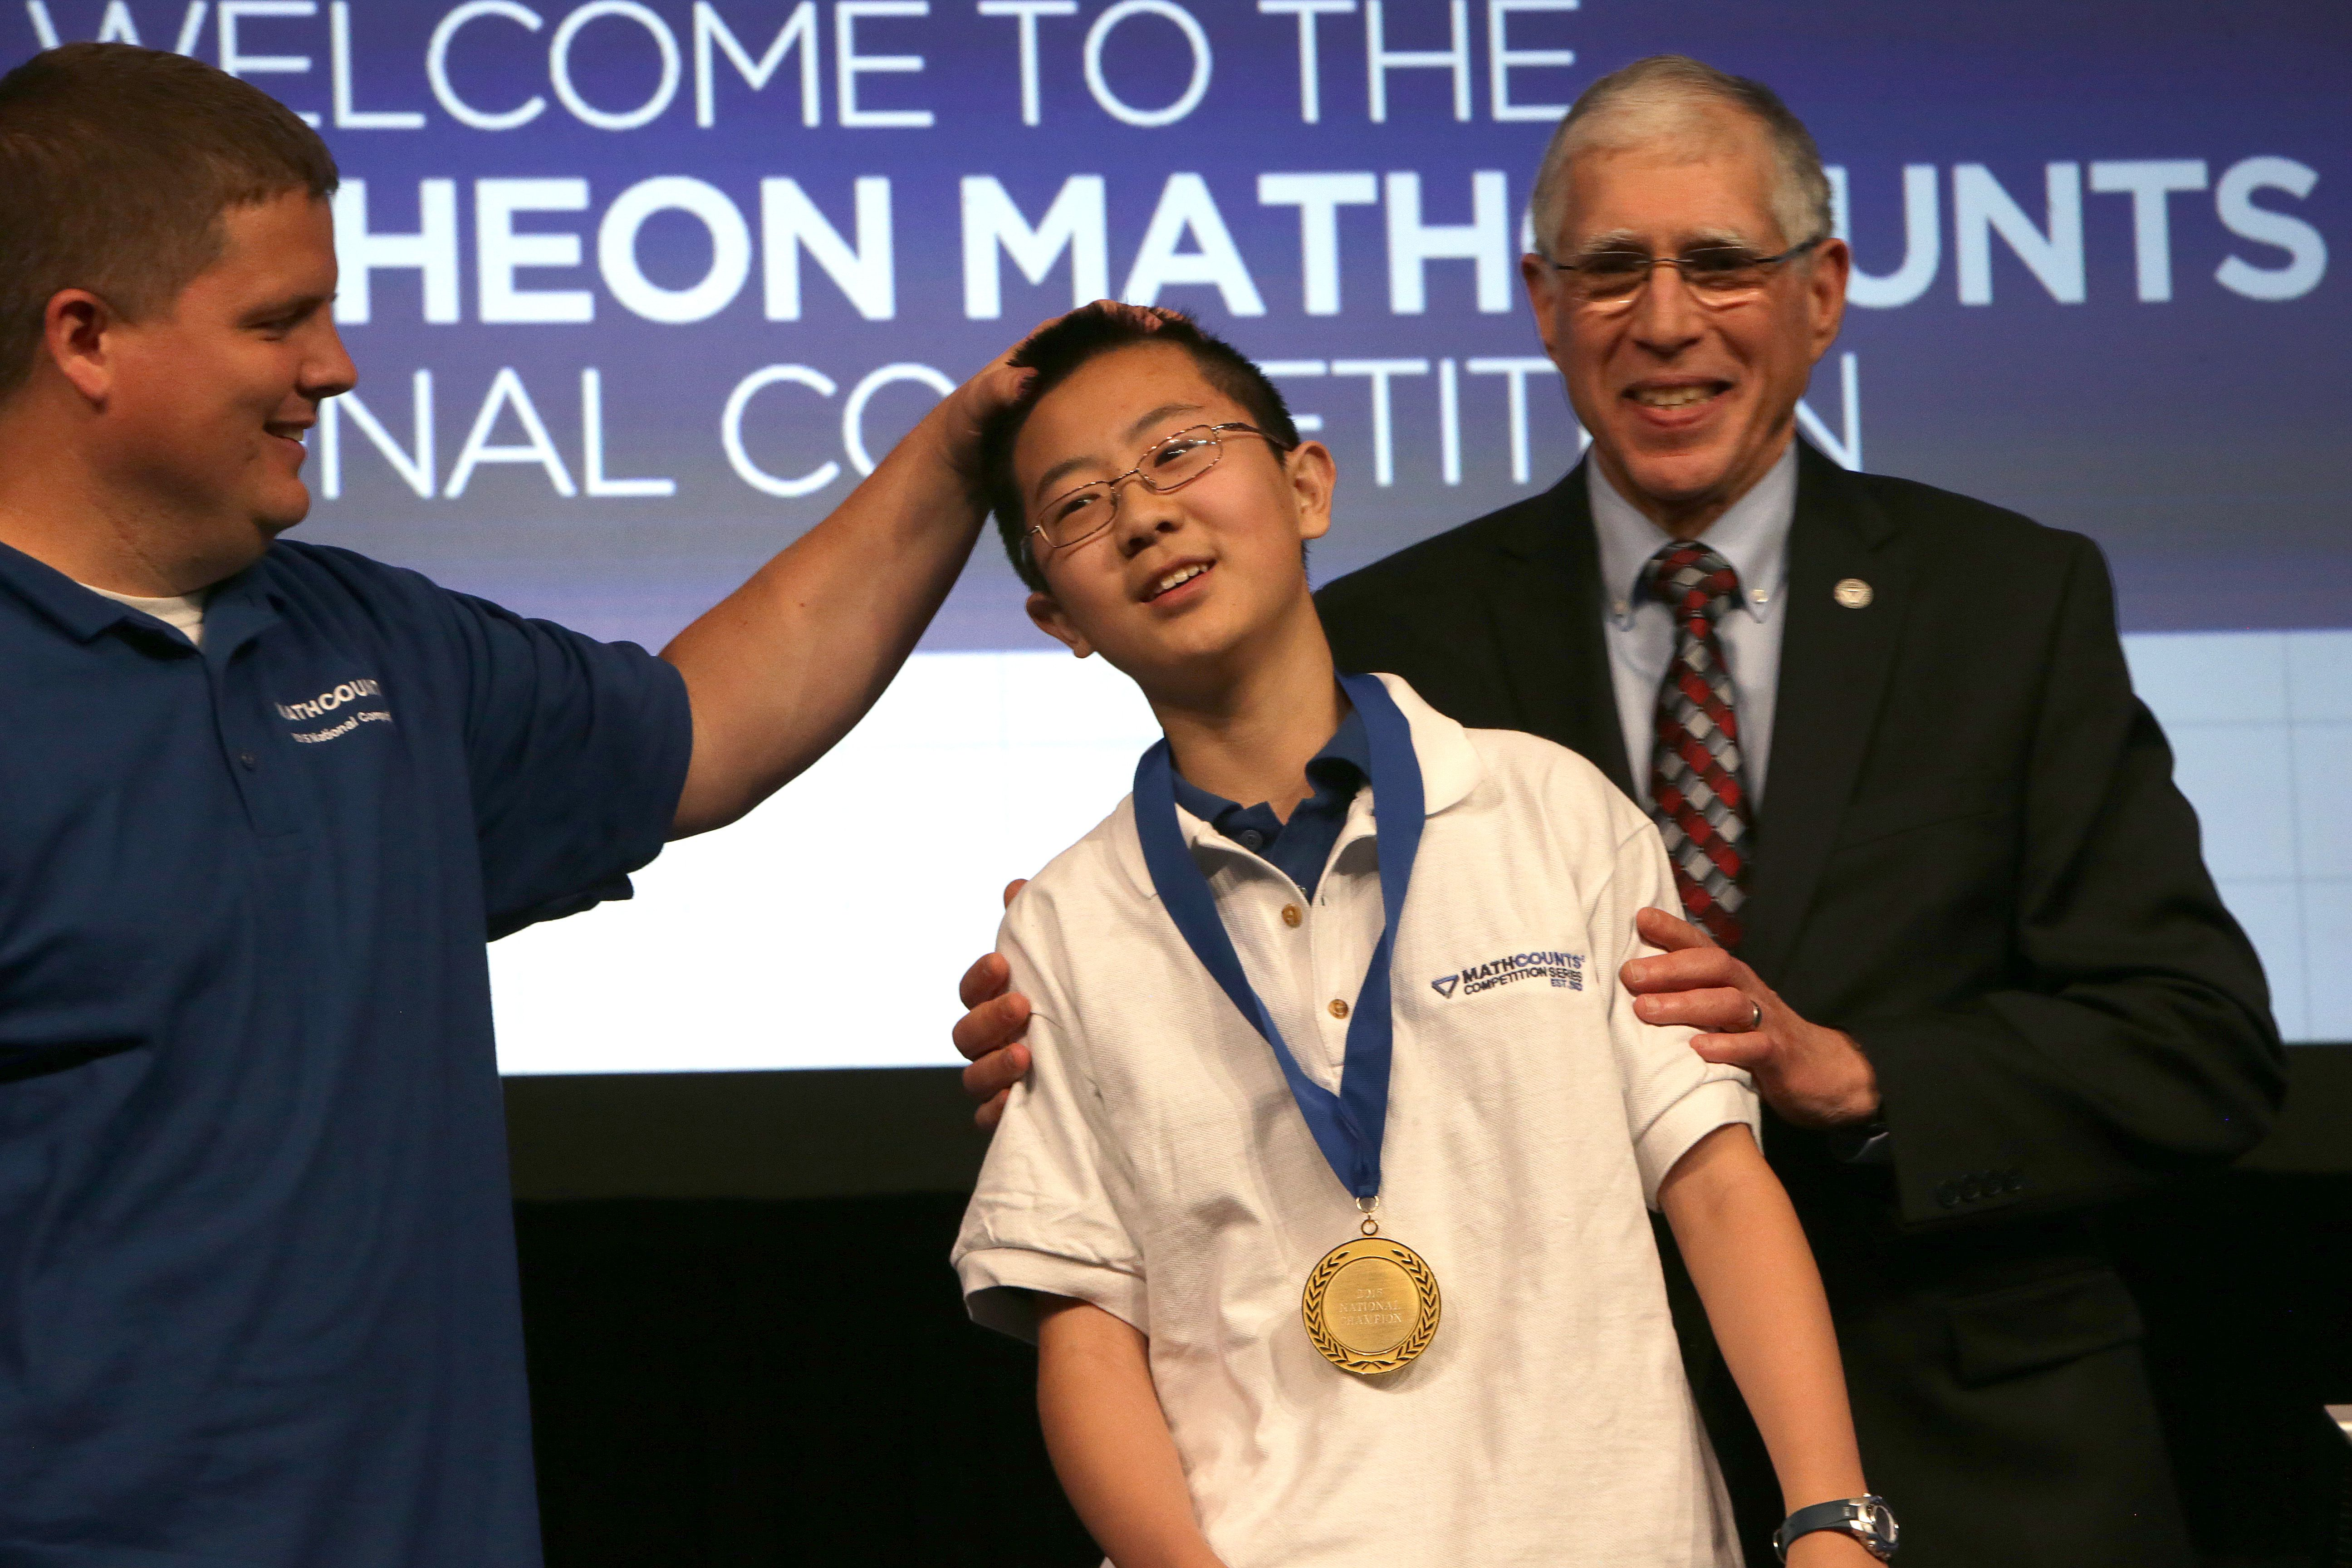 Students make it to 'Super Bowl of adolescent math' - The